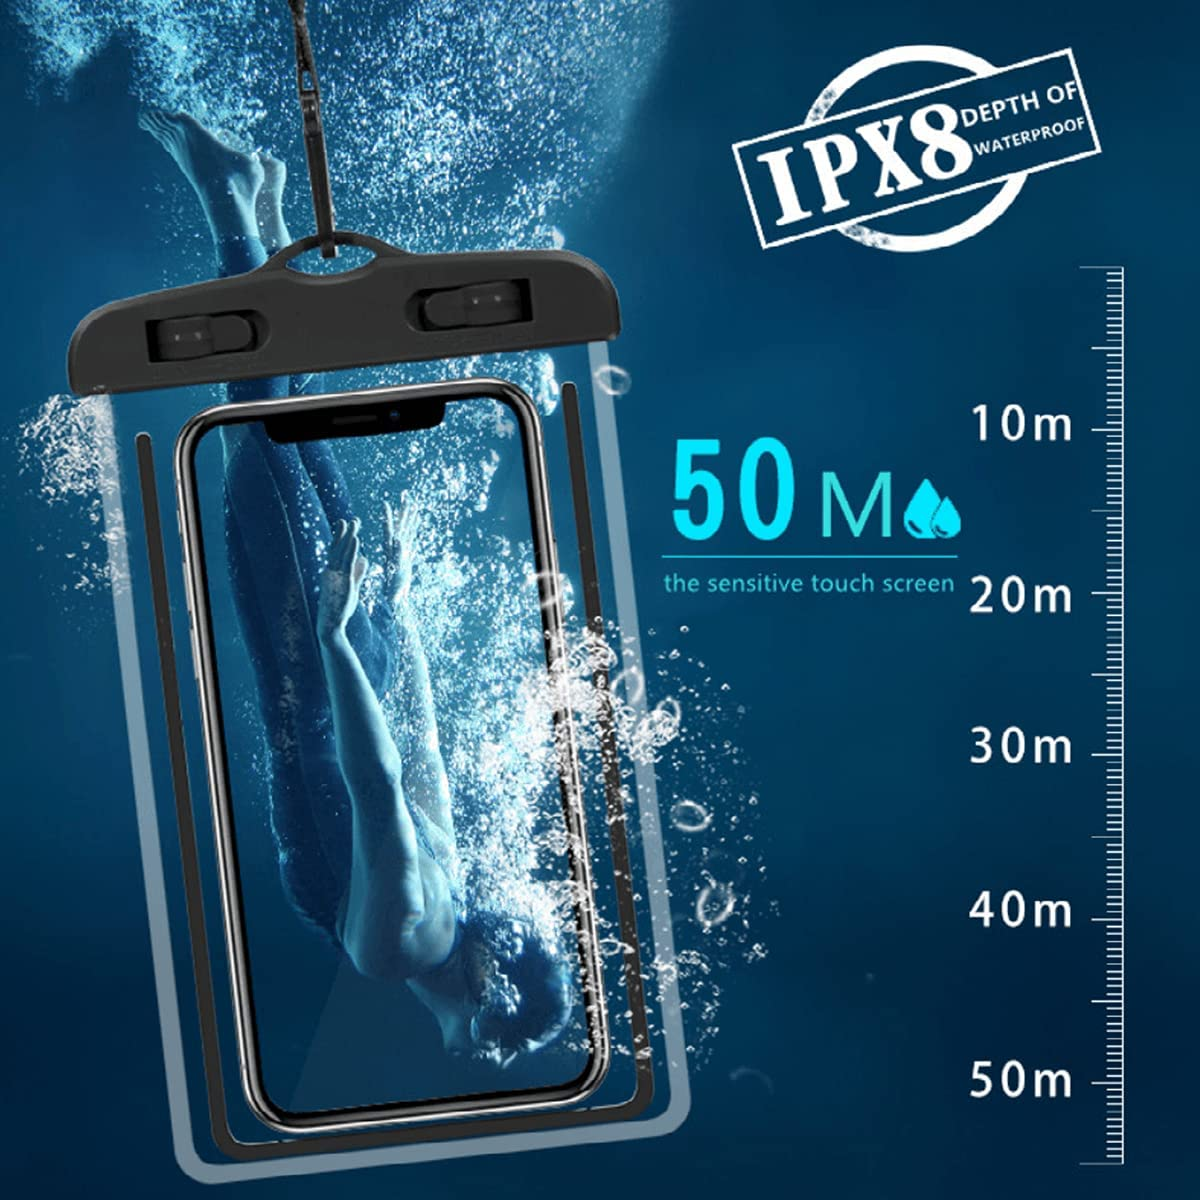 wameay Waterproof Phone Pouch, Universal Waterproof Phone case, Dry Bag Outdoor Beach Bag for iPhone 12 11 8 7 Pro Max SE XR/Samsung Galaxy s21 Note 20/Google Pixel/Moto G7/Oneplus/LG, Samsung(Pink)